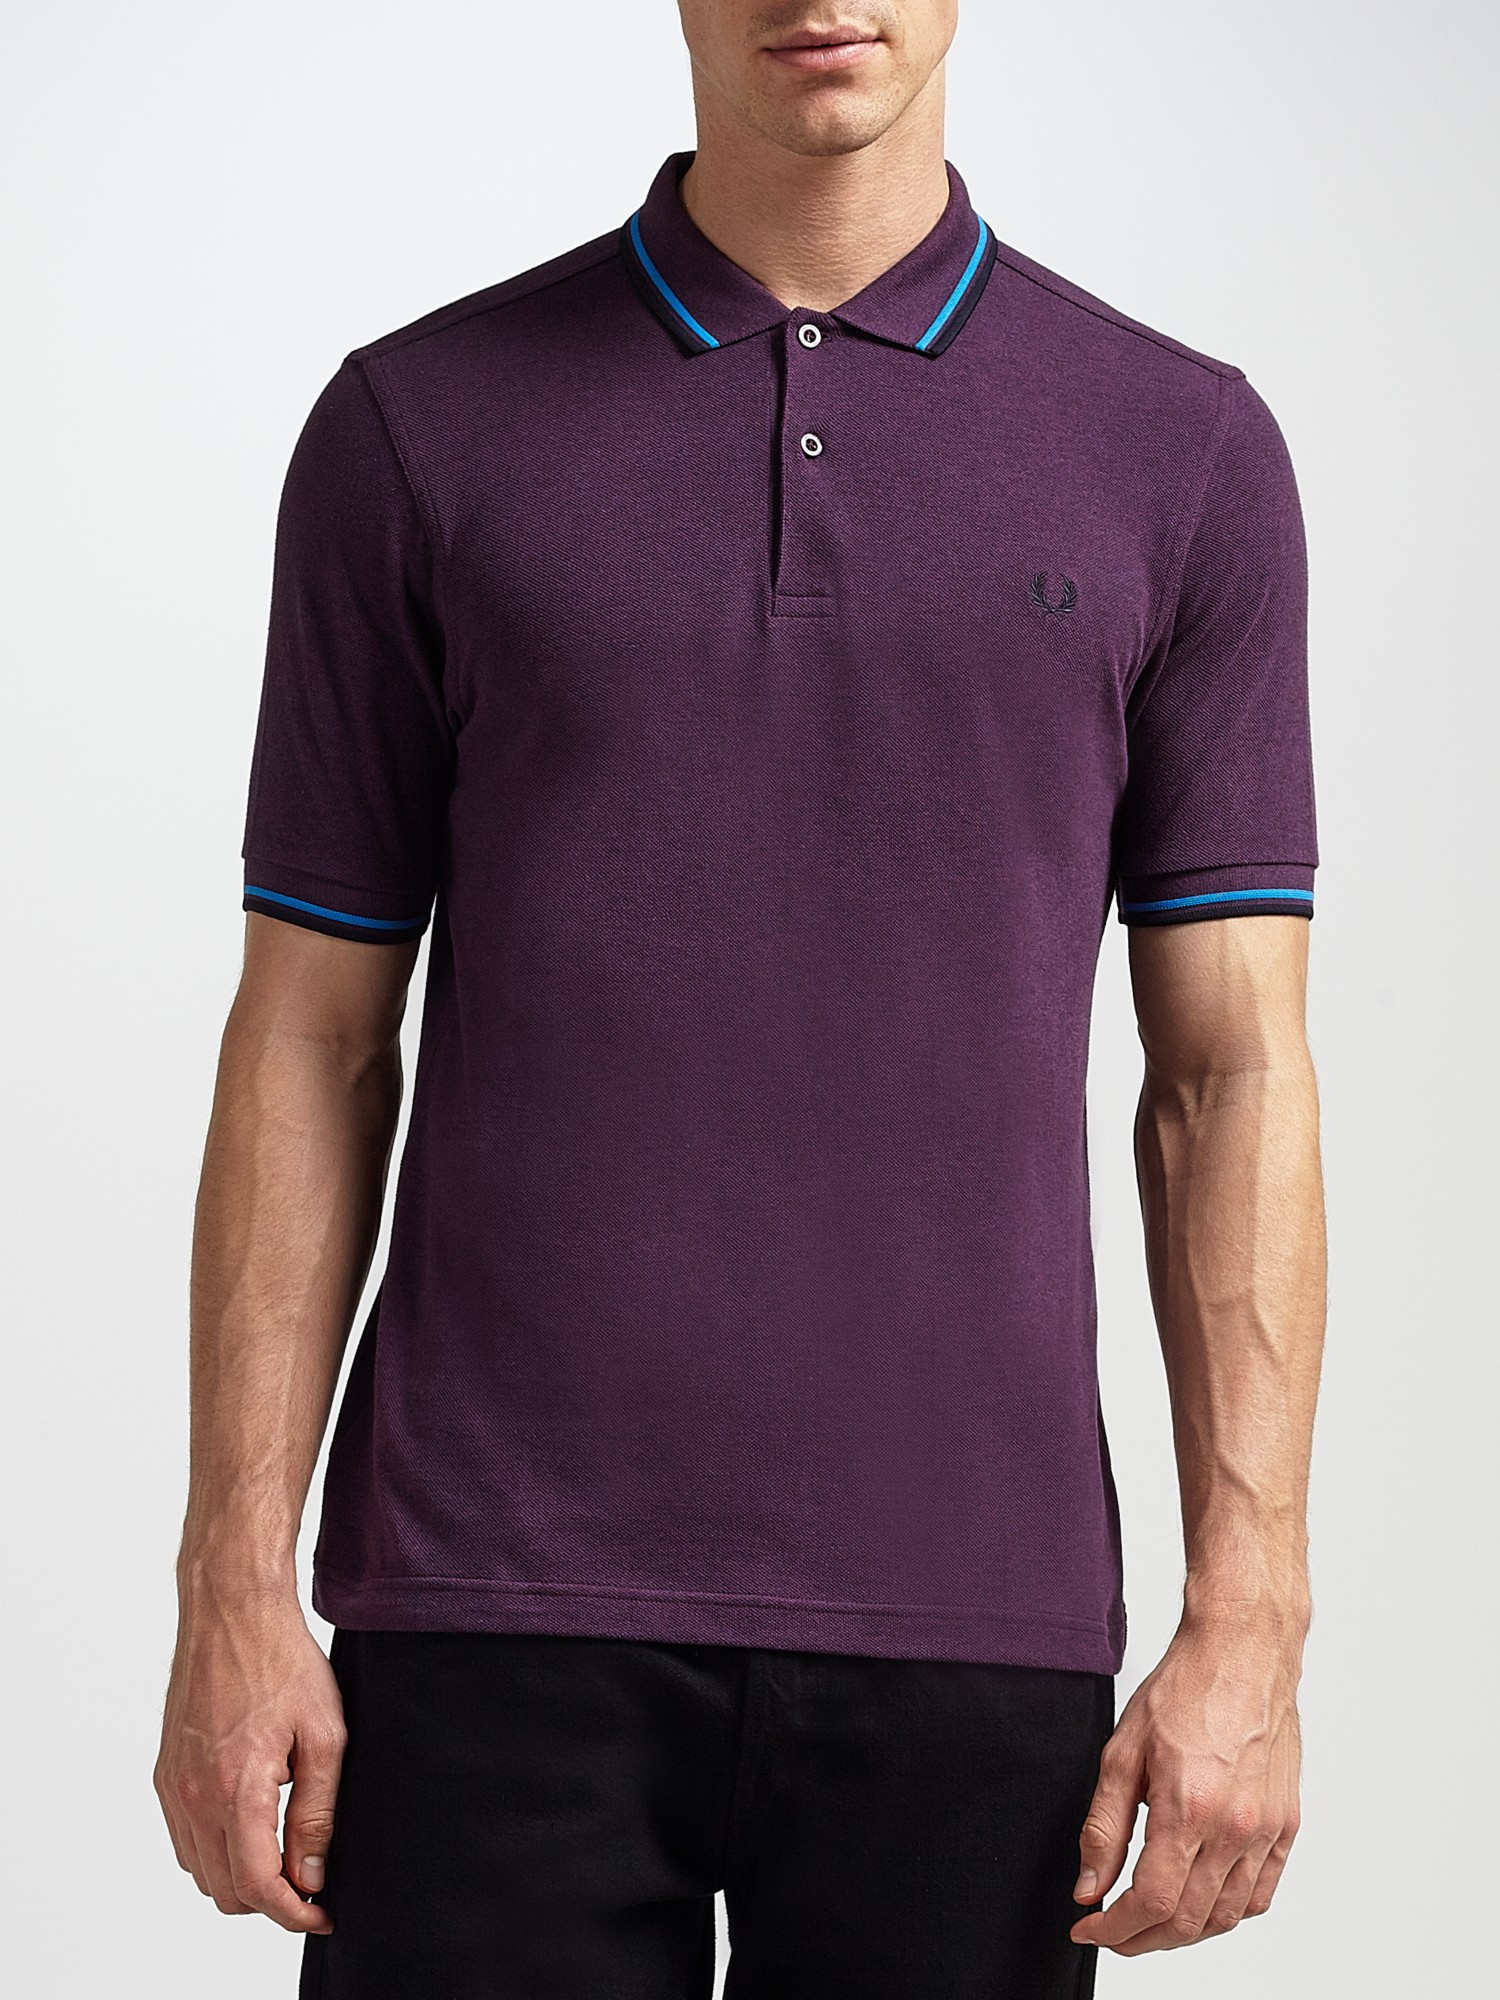 lyst fred perry twin tipped polo shirt in purple for men. Black Bedroom Furniture Sets. Home Design Ideas